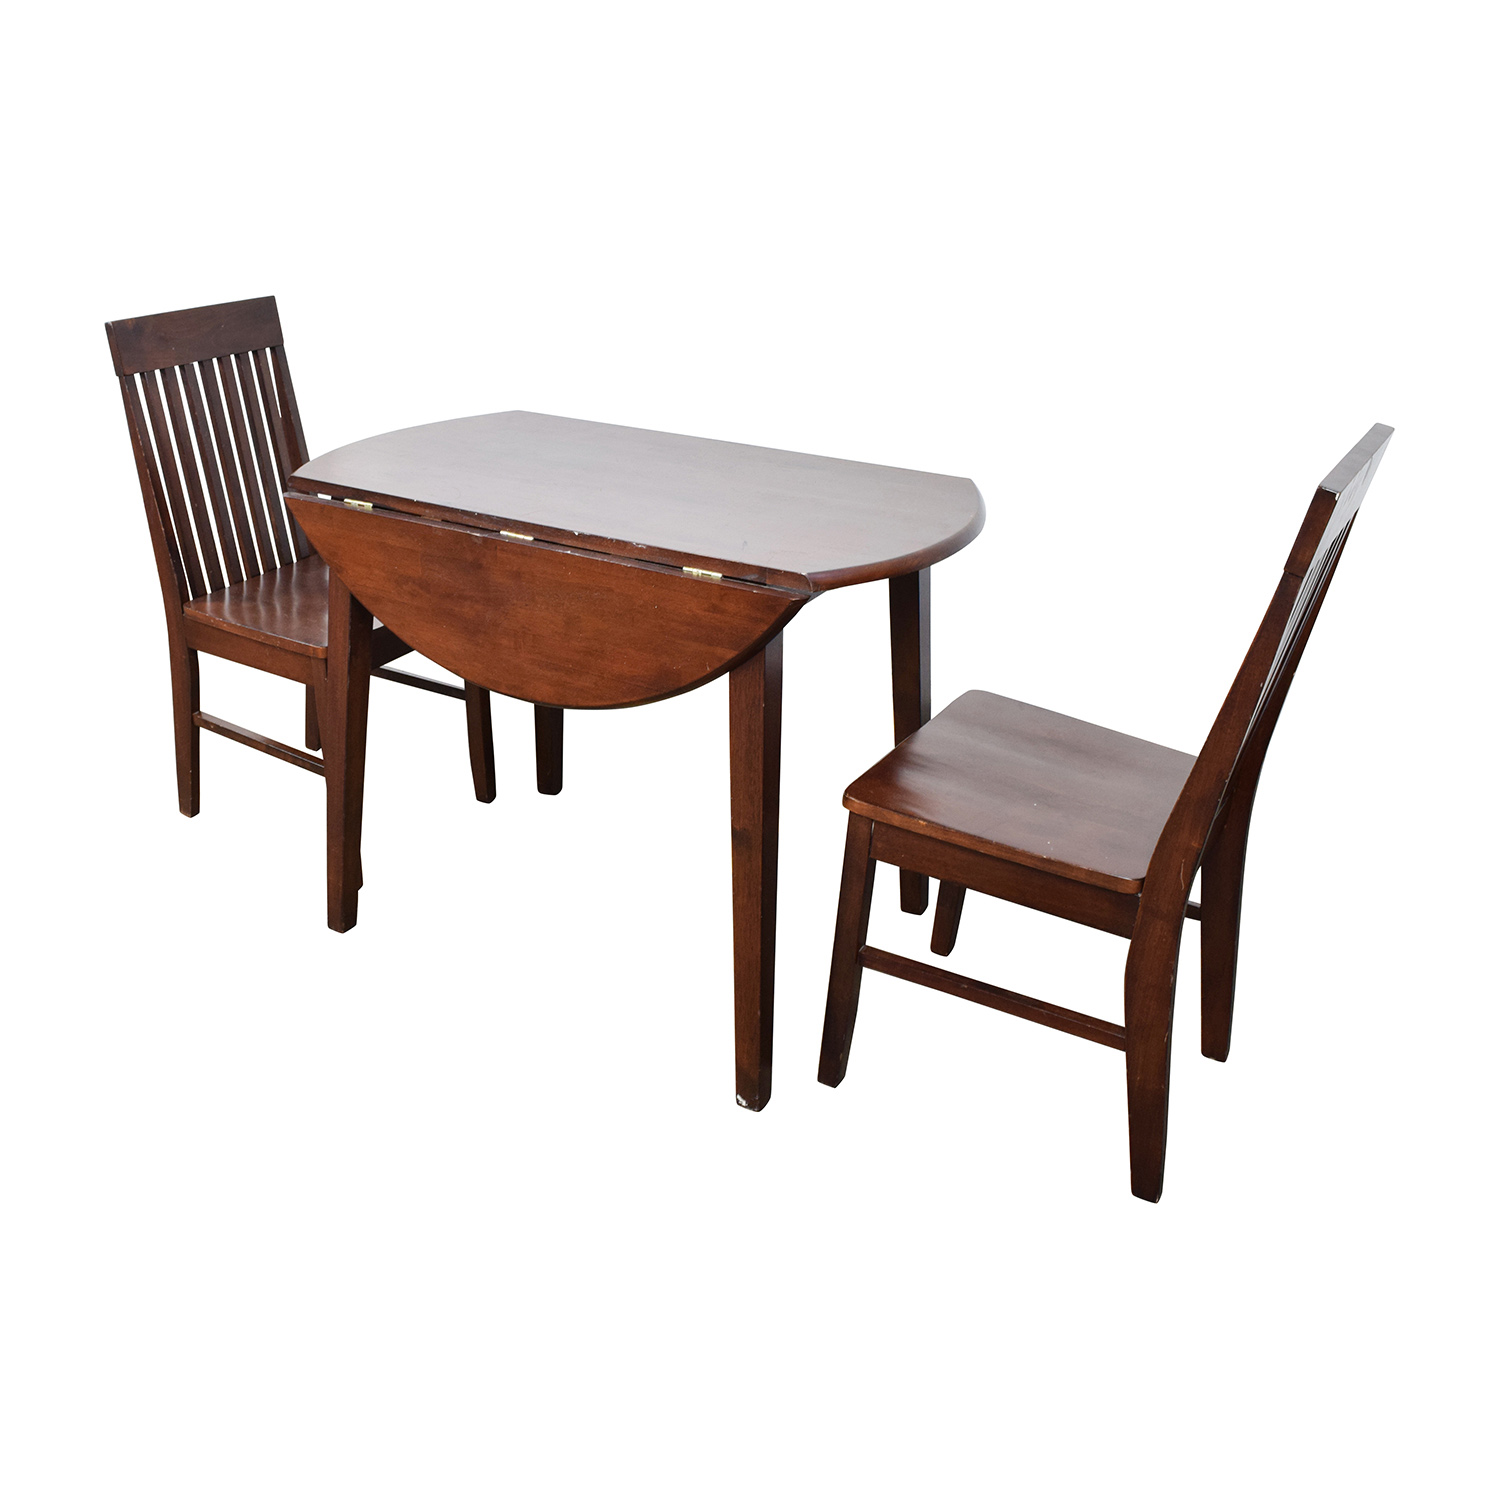 60 off round dining table with folding sides and chairs tables Round dining table set